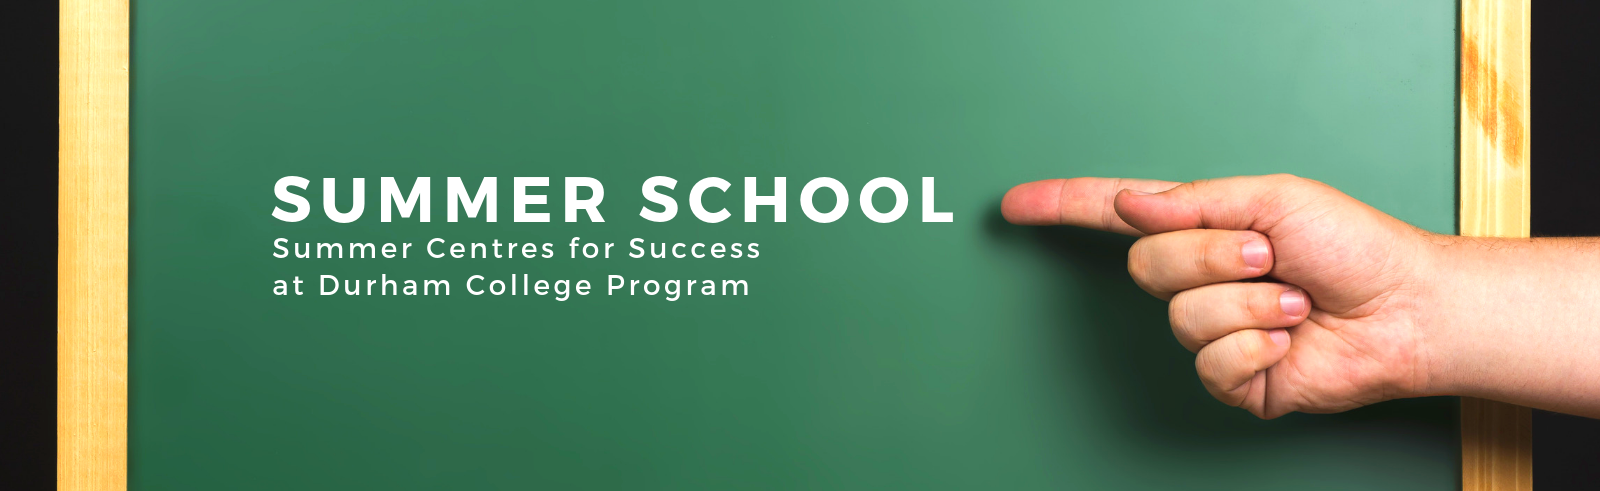 Summer Centres for Success at Durham College Page Banner